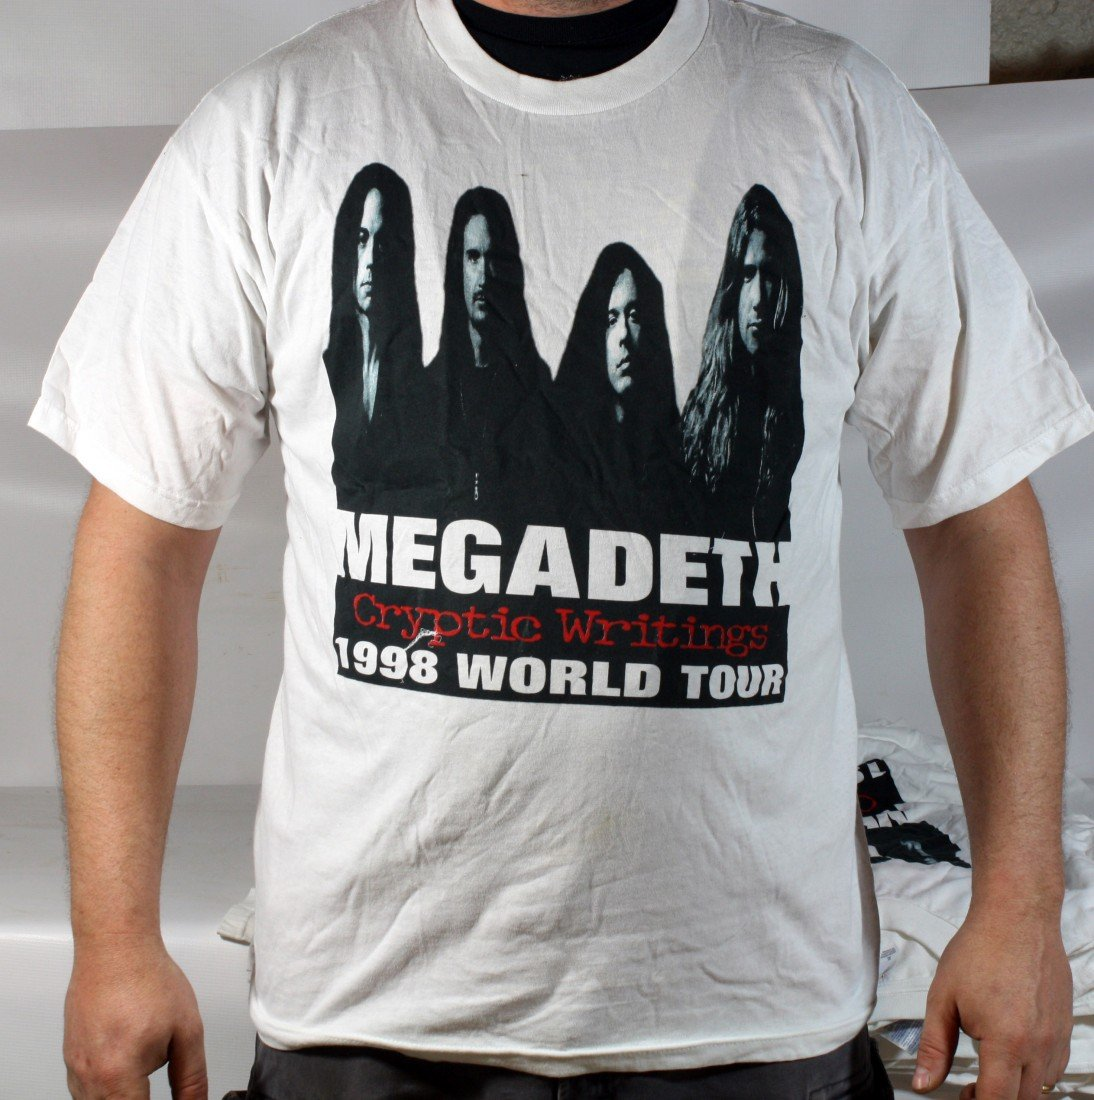 e5c542eb0141 15: Lot of 9 MegaDeth T-Shirts from their 1998 tour - Jun 30, 2011 ...